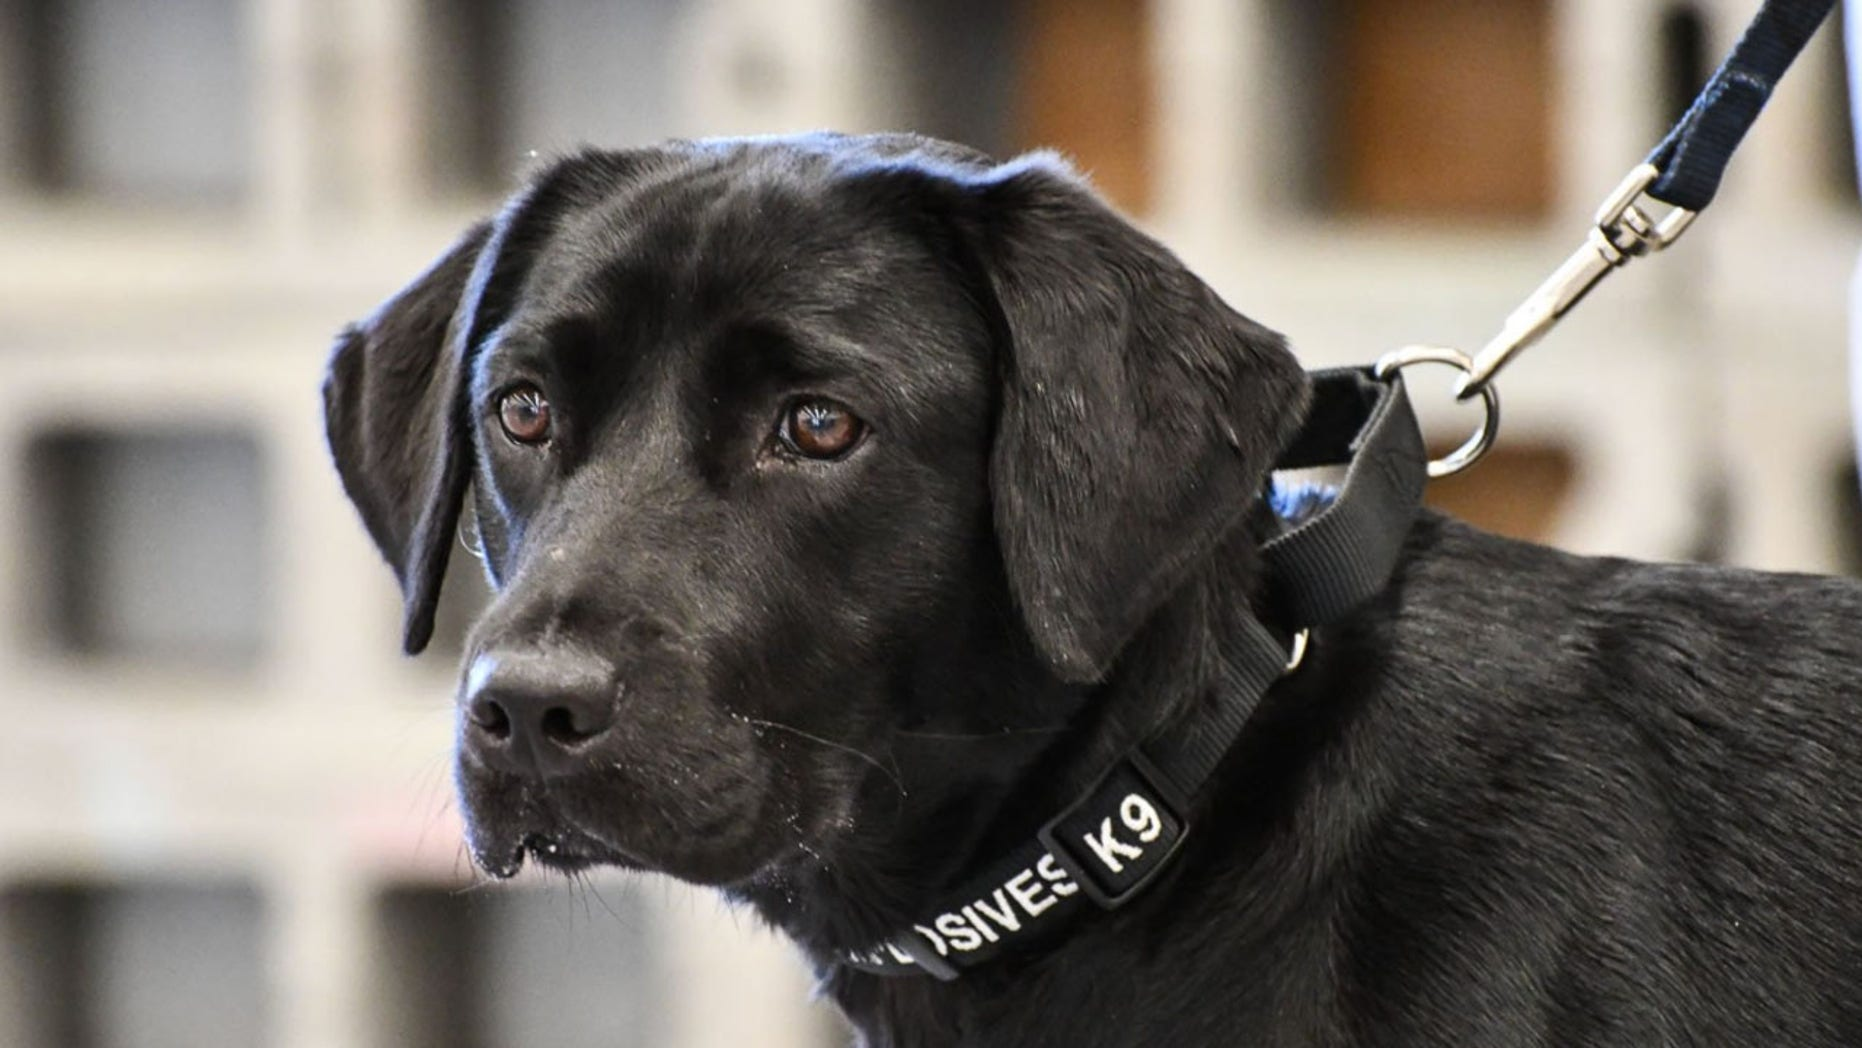 Lulu lost interest in during training to sniff out explosives for the CIA's bomb detection program.